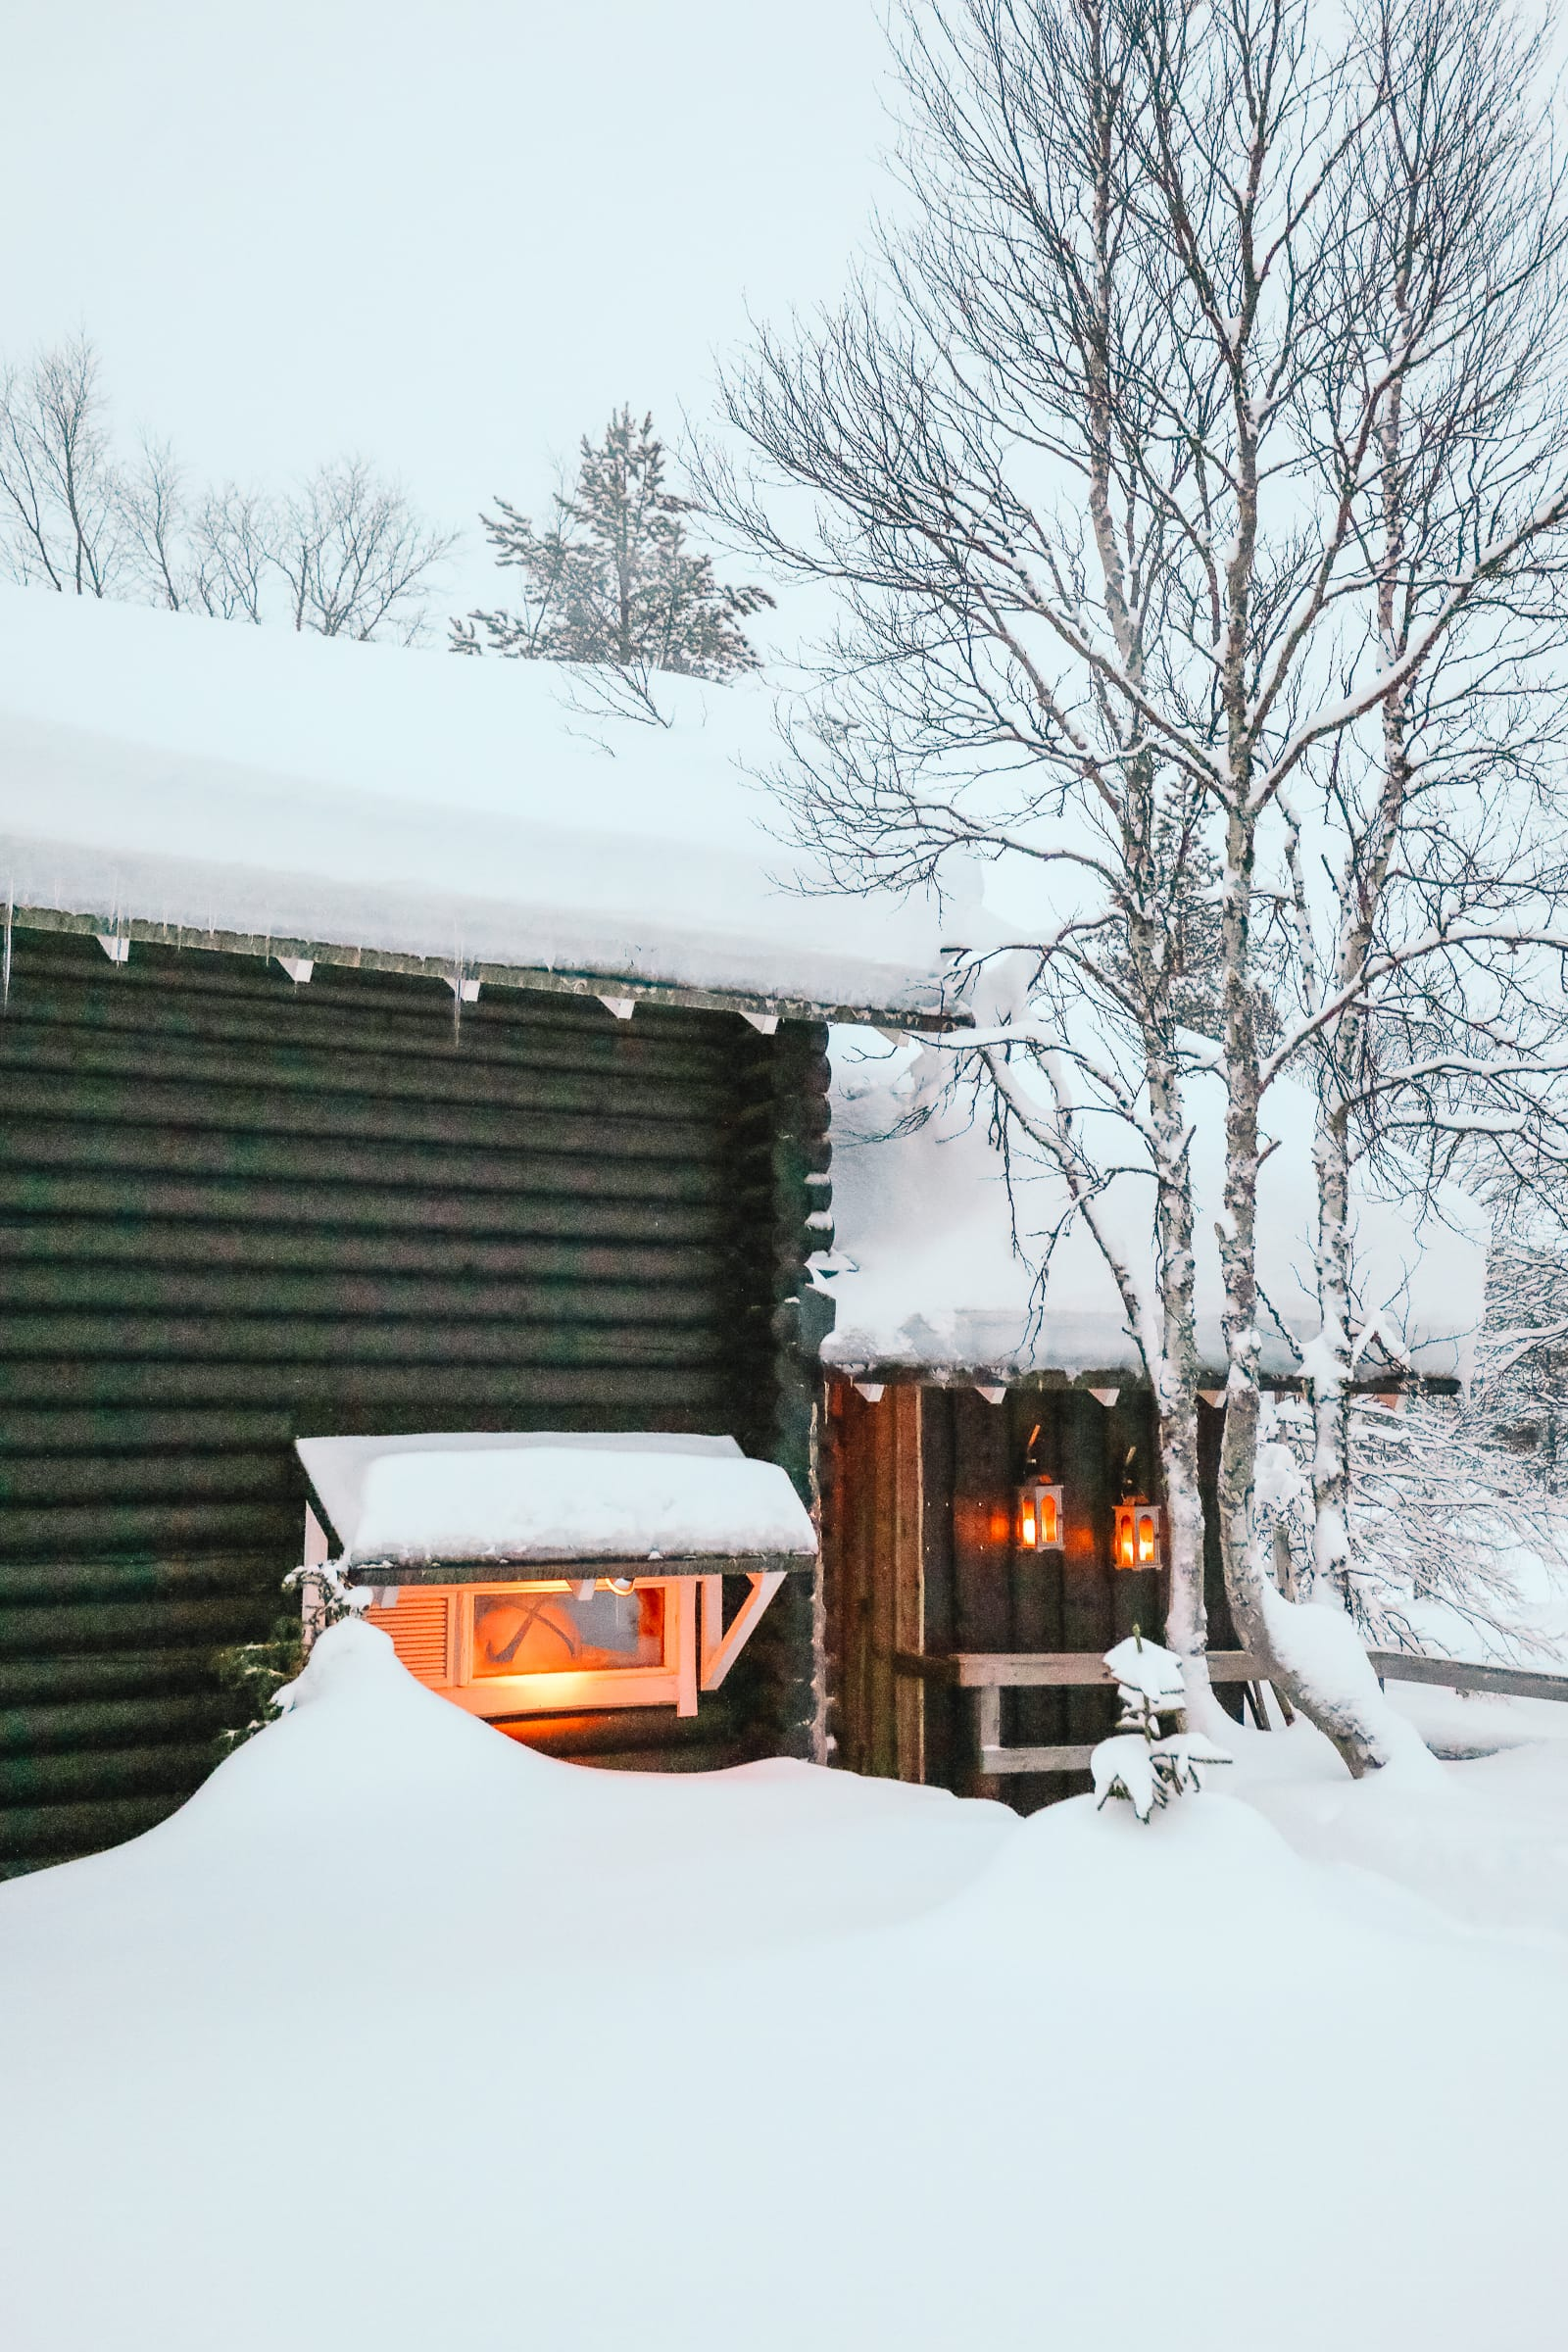 The First 24 Hours In Lapland, Finland (35)